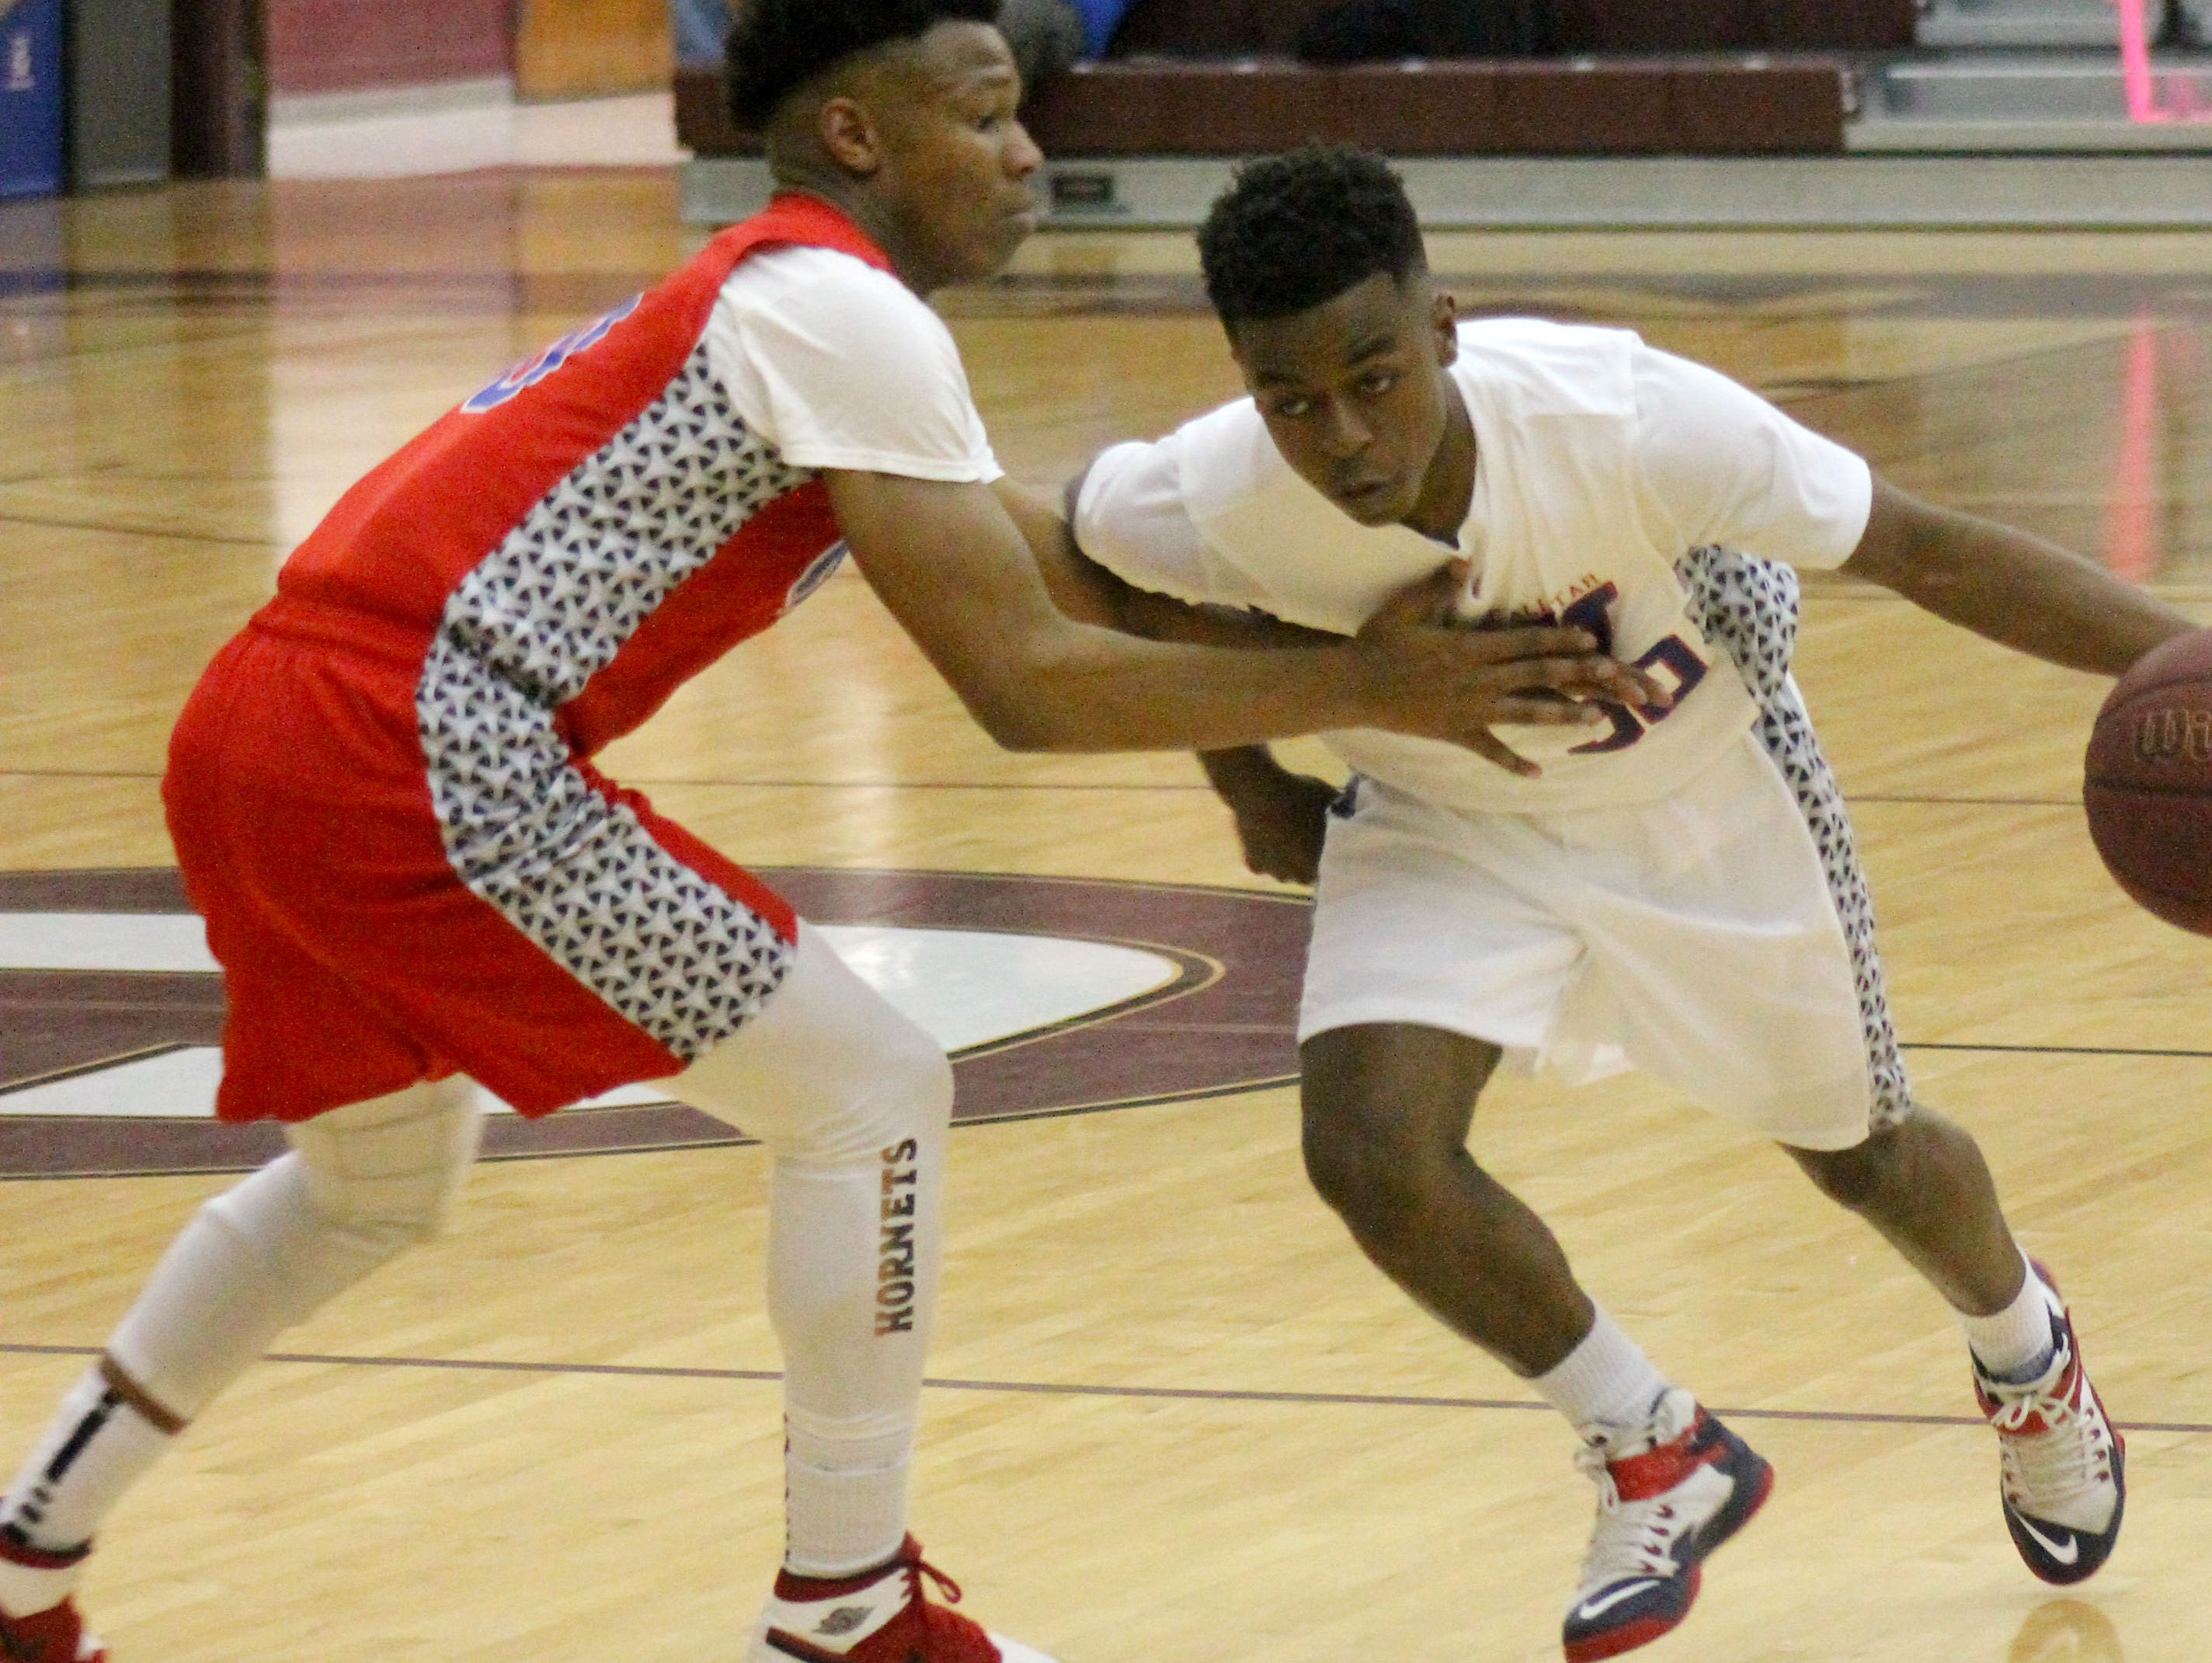 Evangel senior guard Bobby Armstrong drives against Arcadia's Danquarian Fields in the 8th annual I-20 Classic All-Star game.